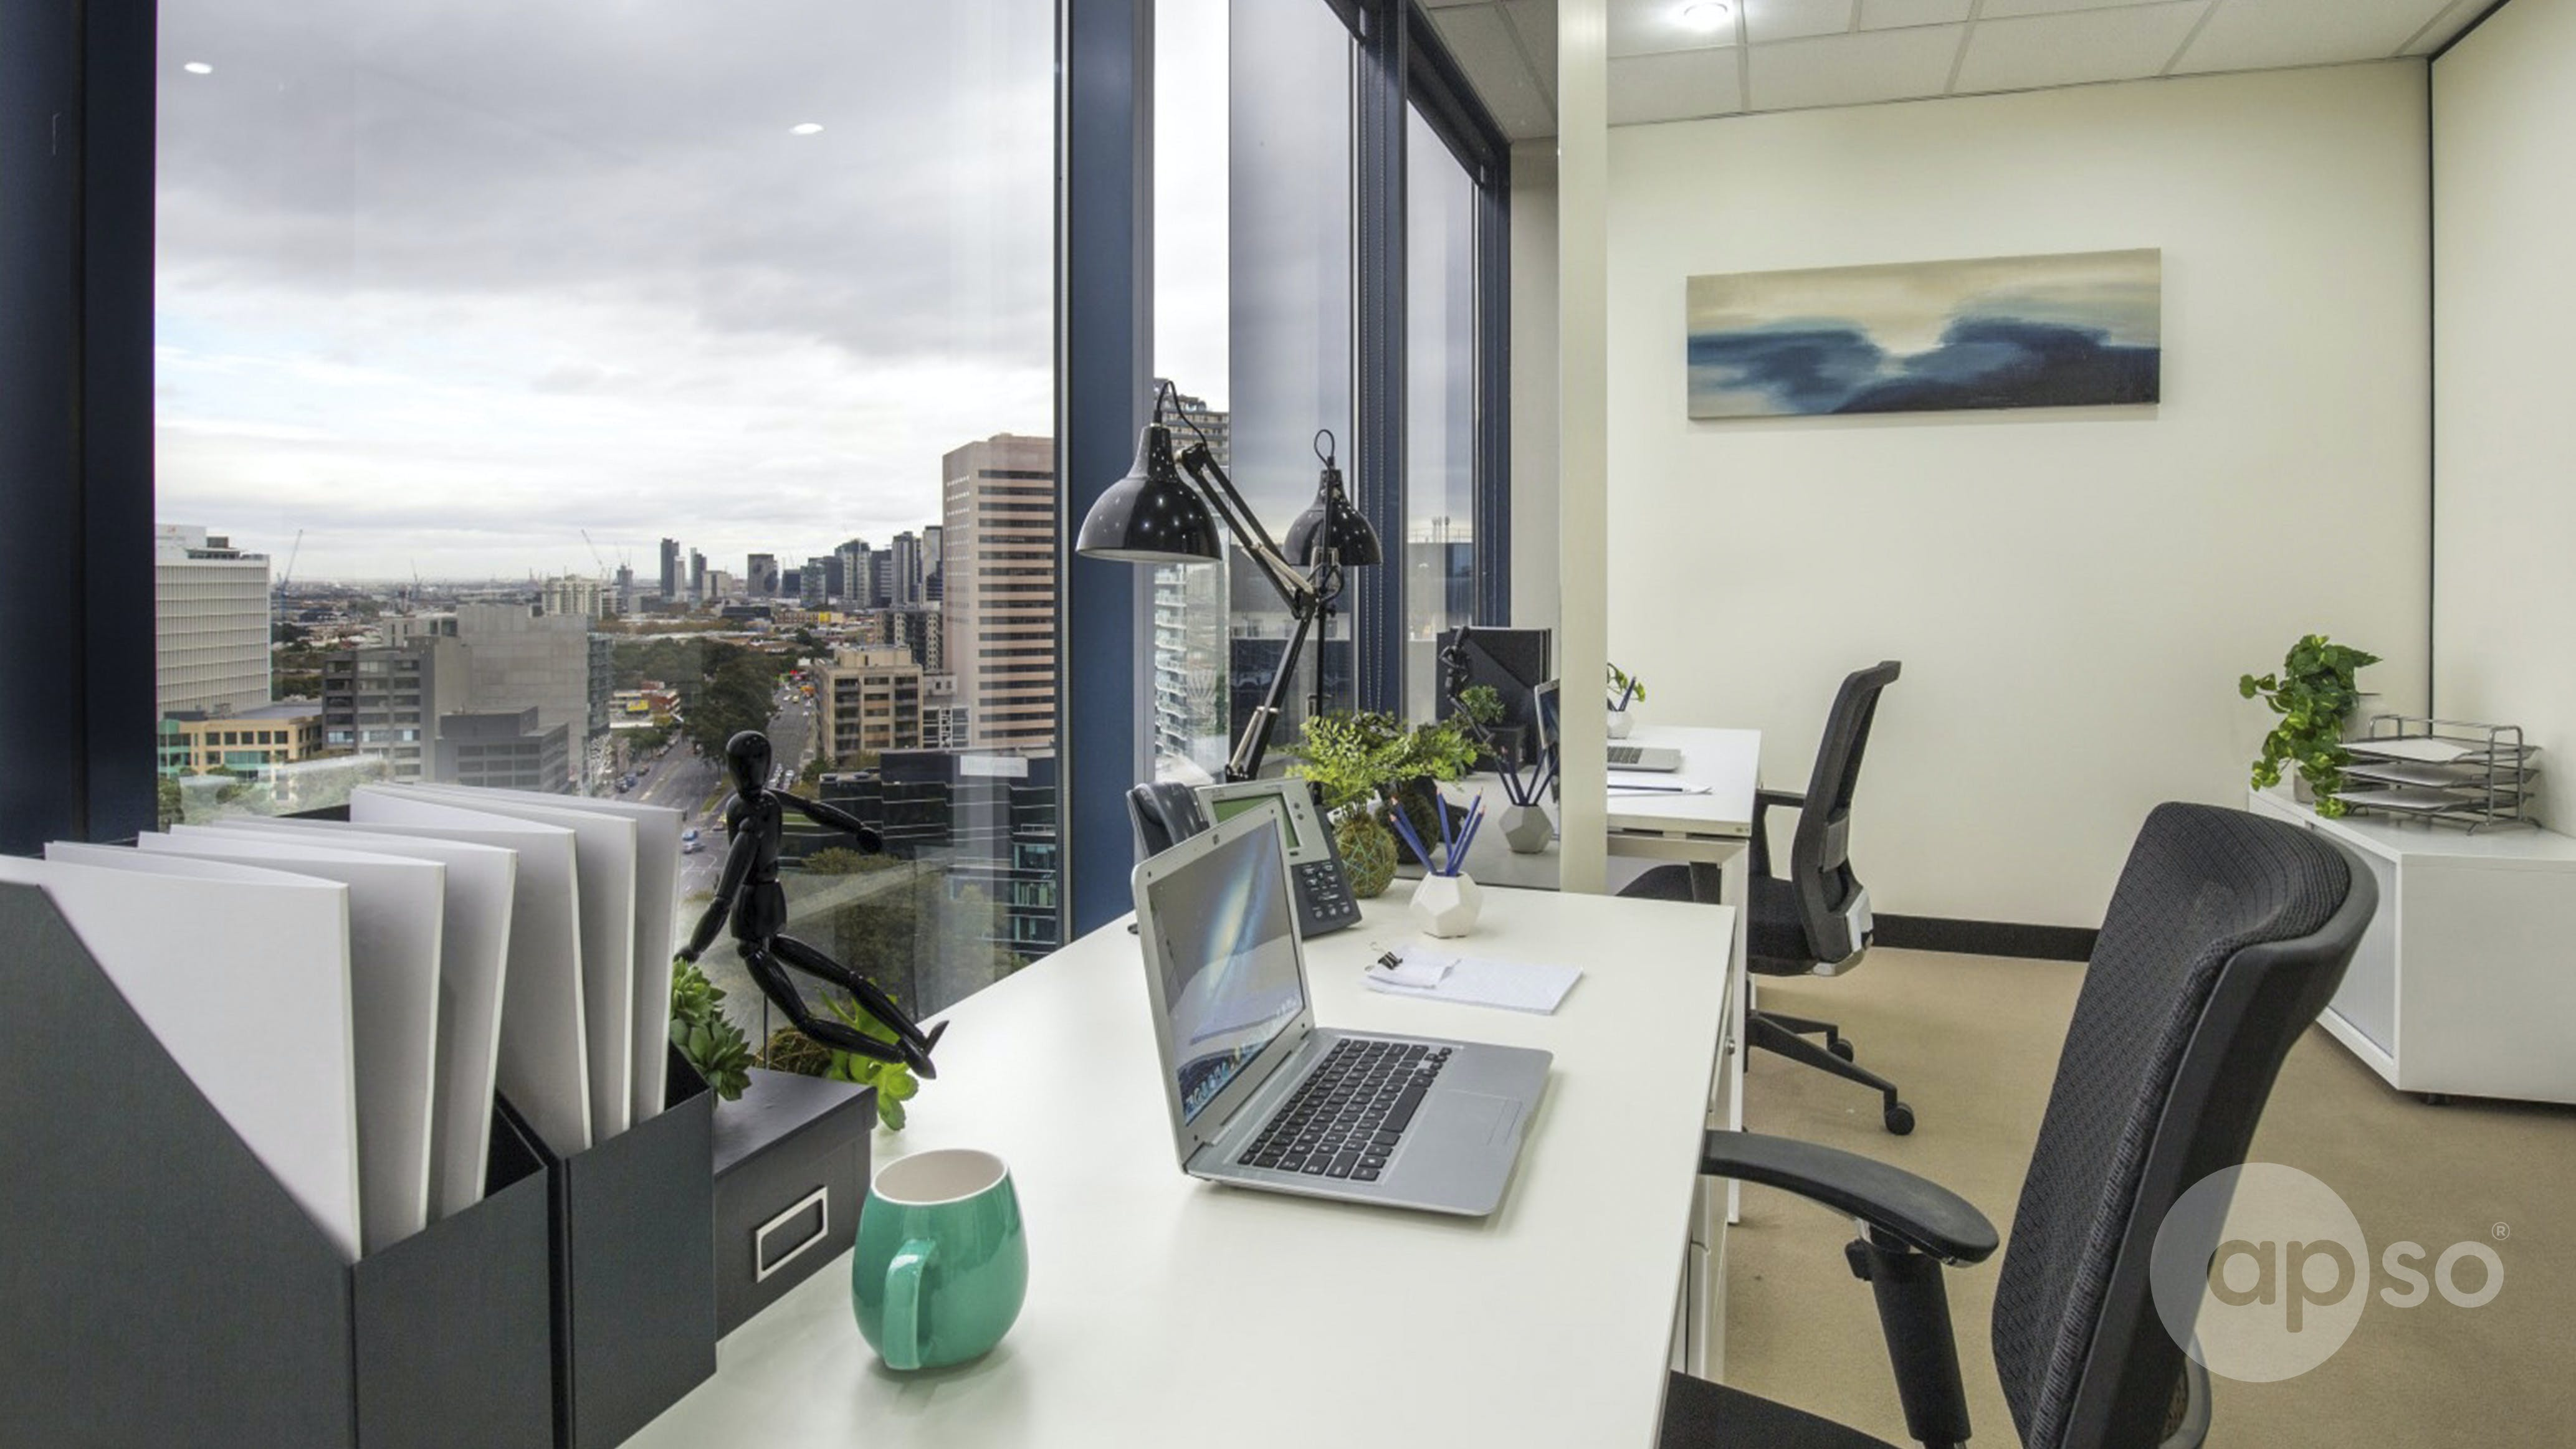 Suite 1138, private office at St Kilda Rd Towers, image 5